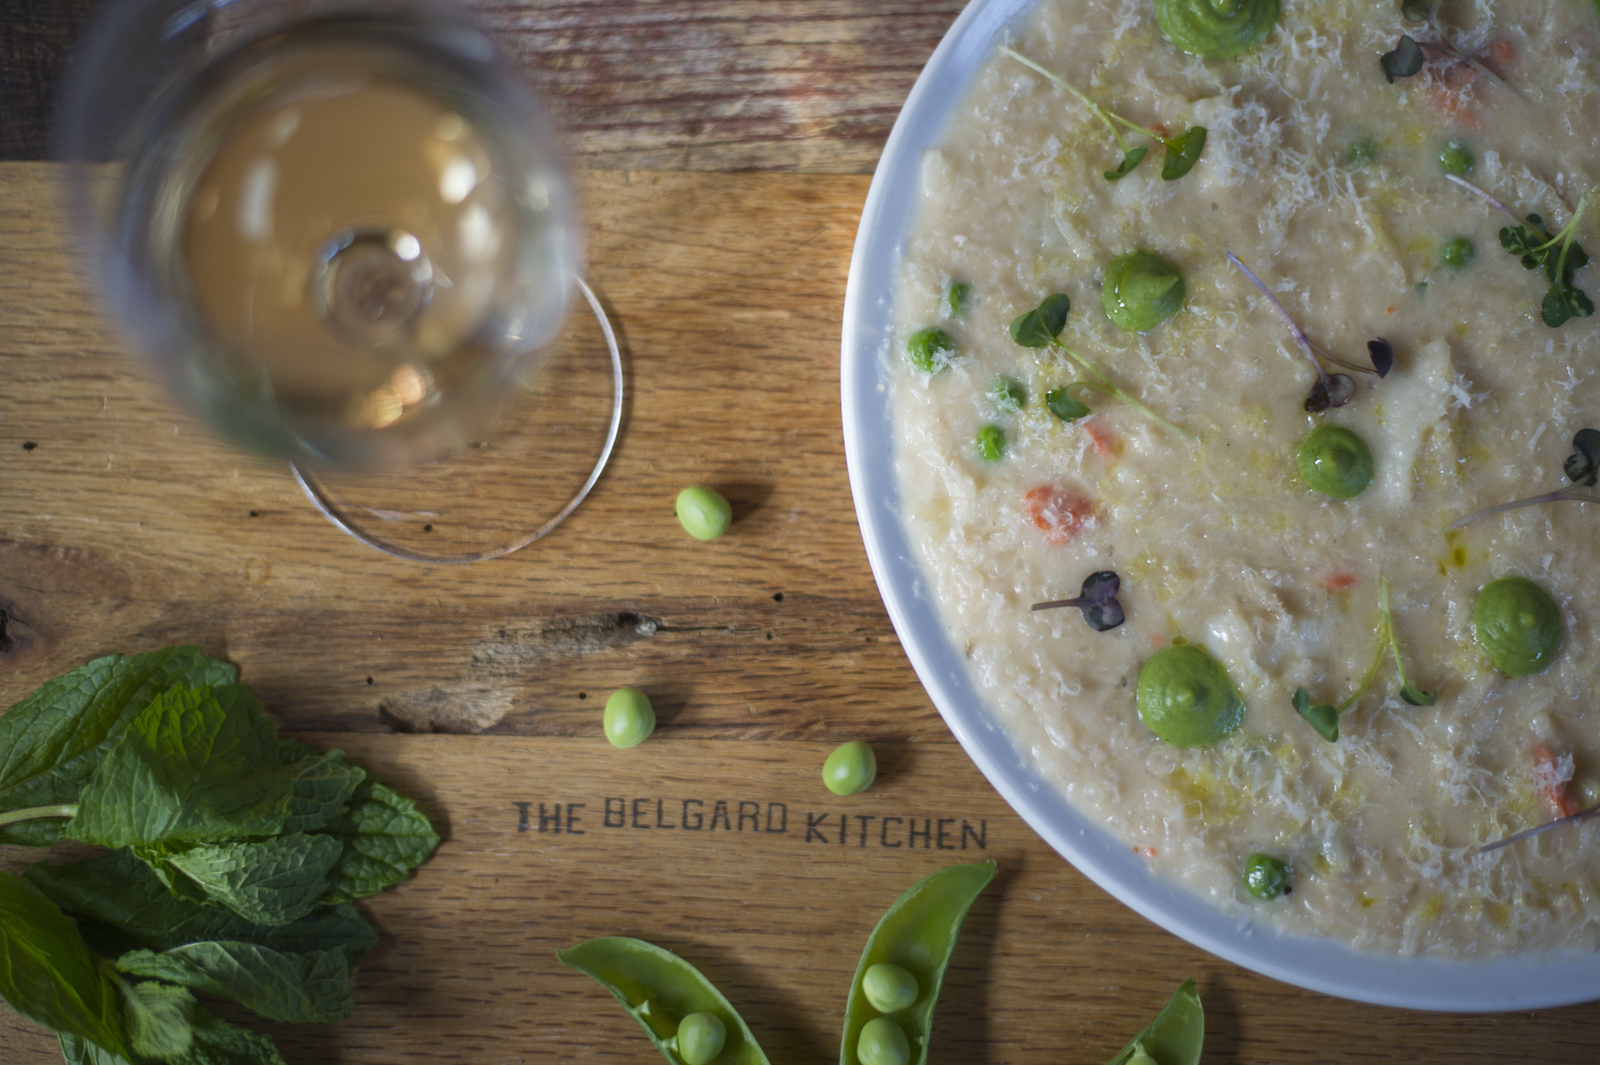 Belgard Kitchen Announces 'apron Club' Virtual Cooking Classes In Time For Valentine's Day photo